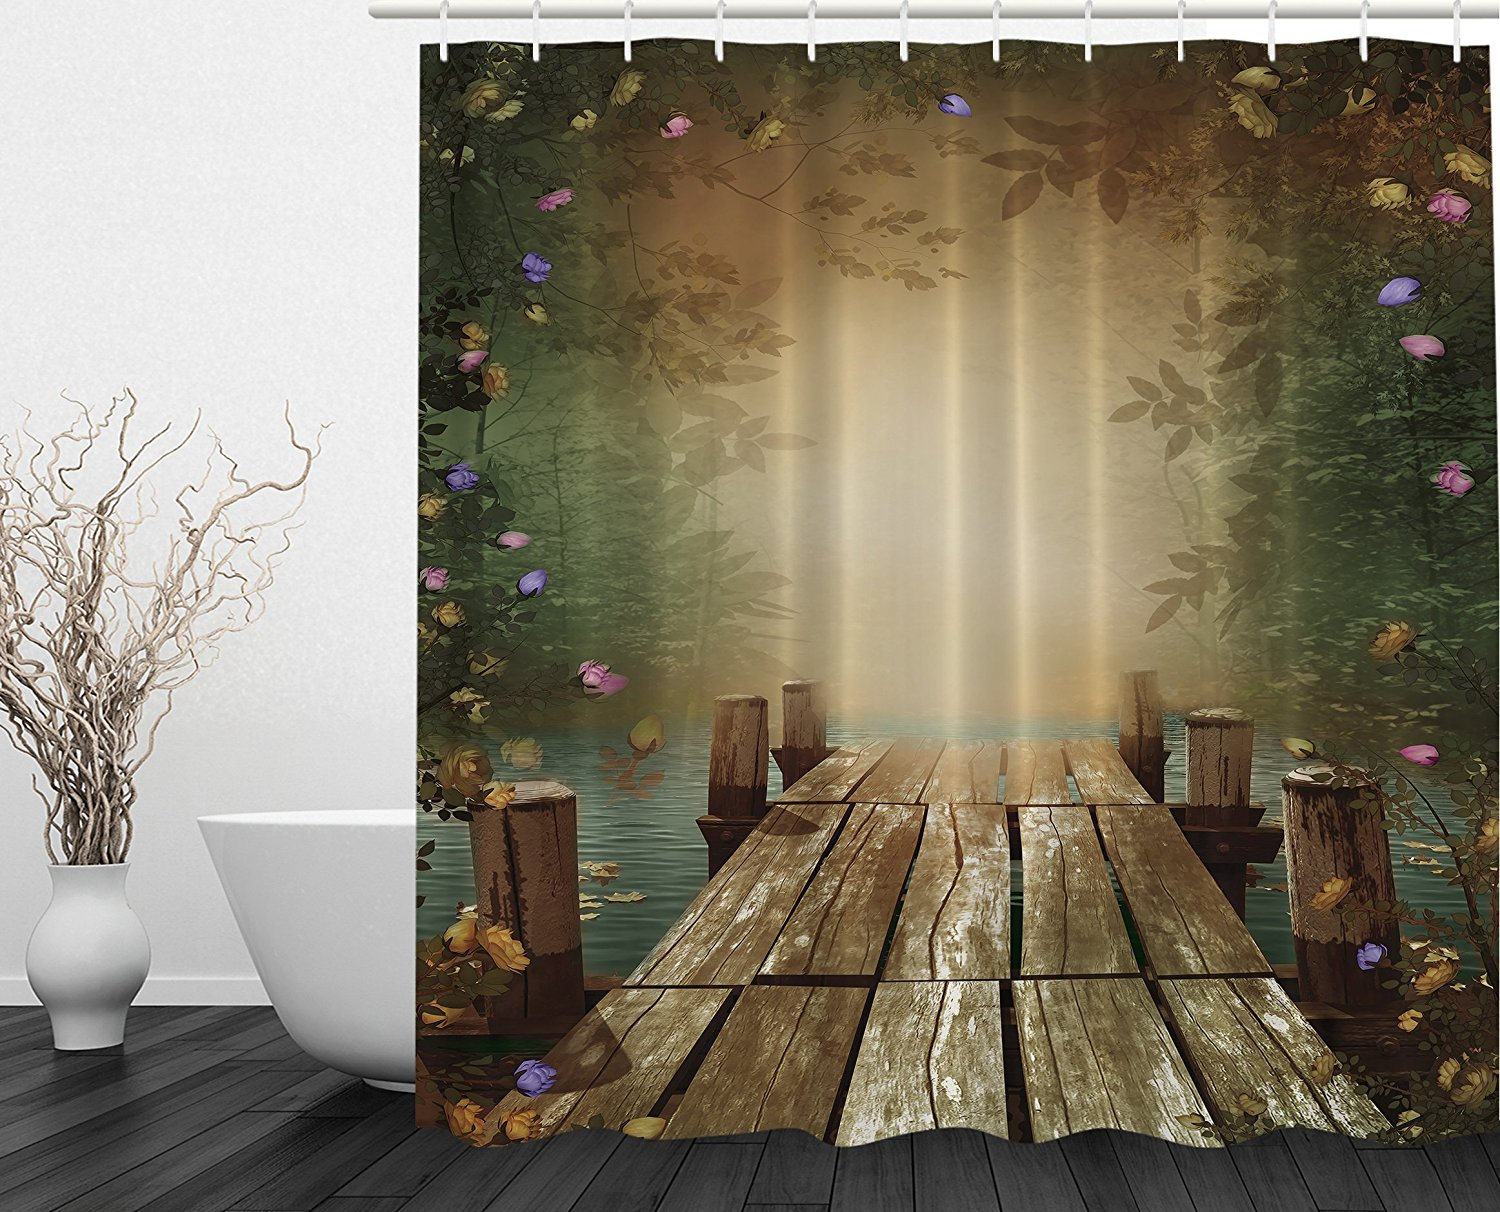 Going Away Gifts Fairy Tale Wooden Floating Dock Imaginary World Lilac  Yellow Pink Roses Whimsical Romantic